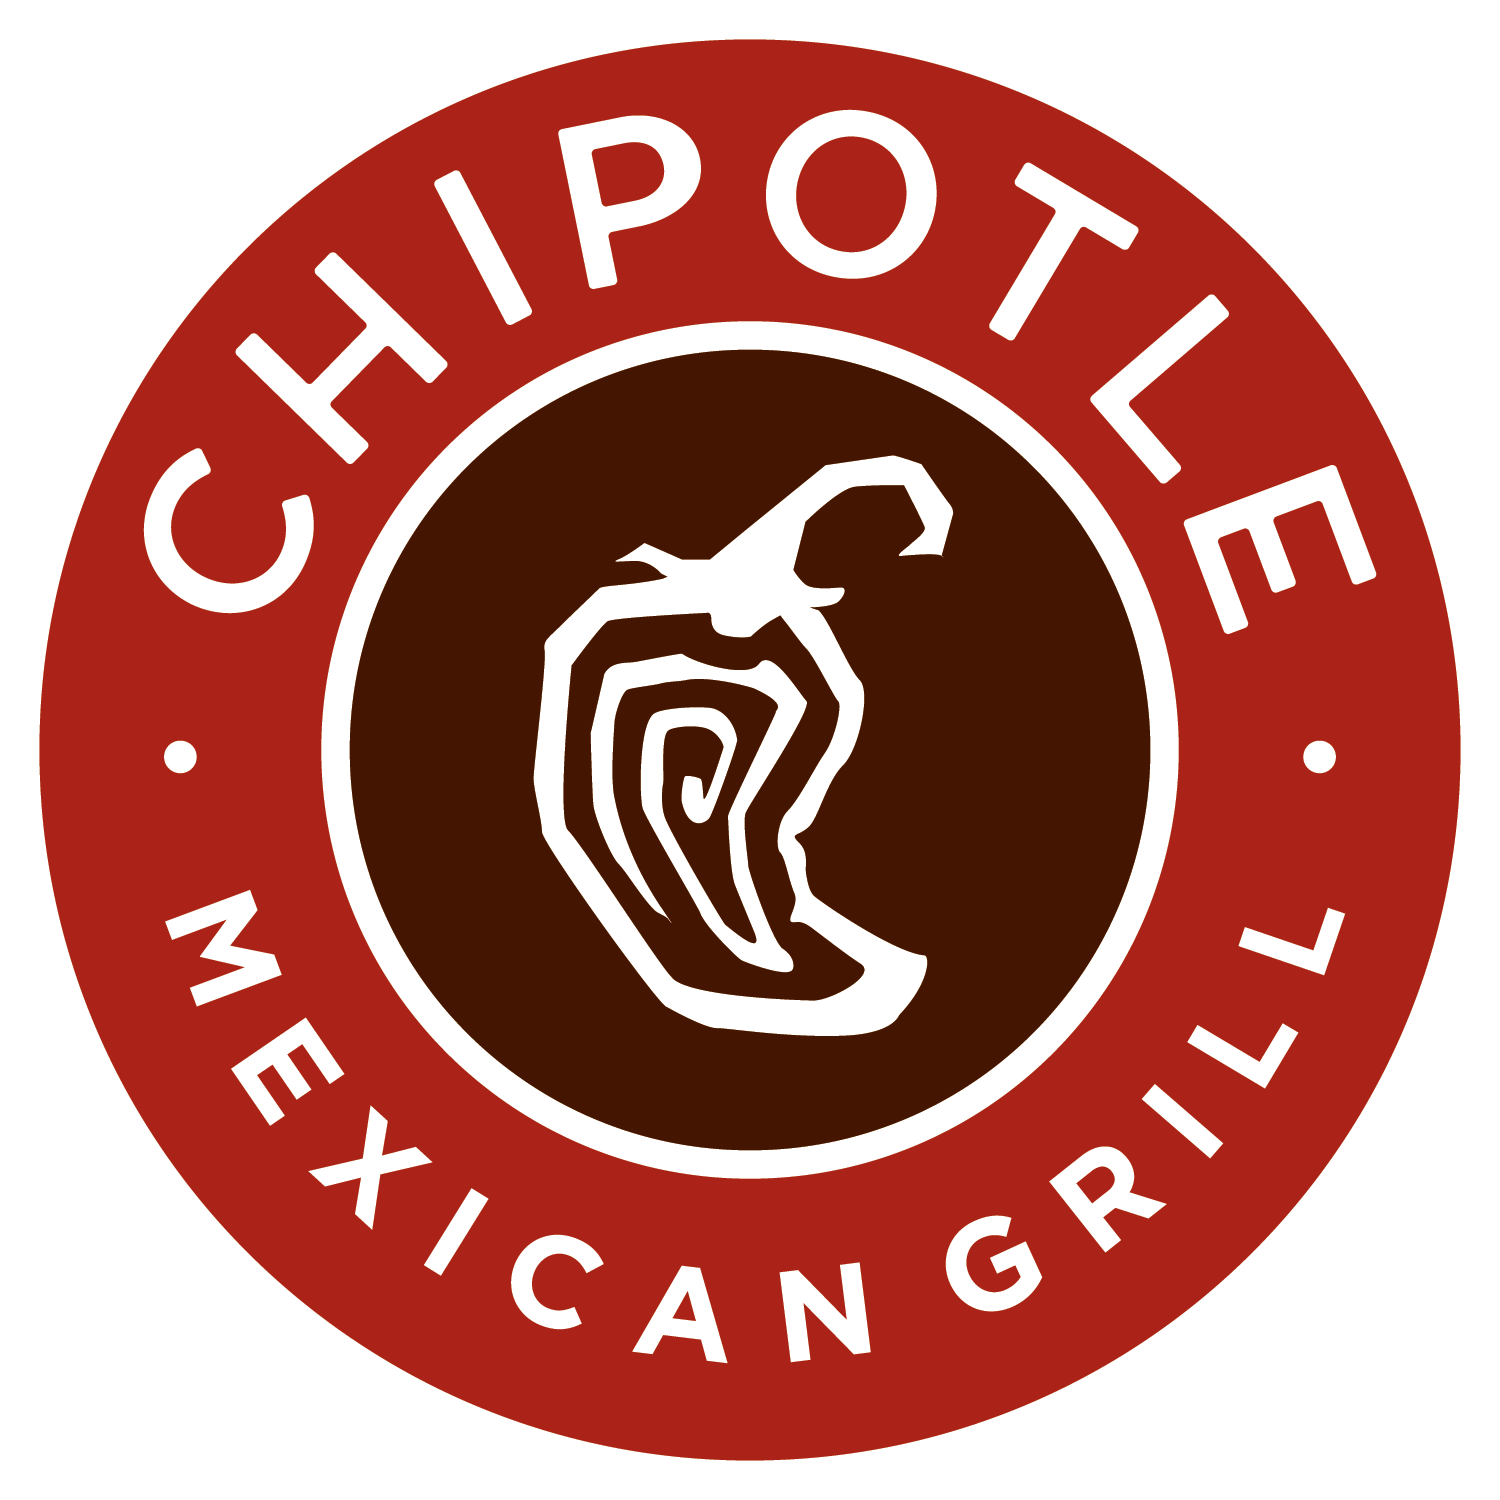 Chipotle gifts $380K for California wildfire recovery effort